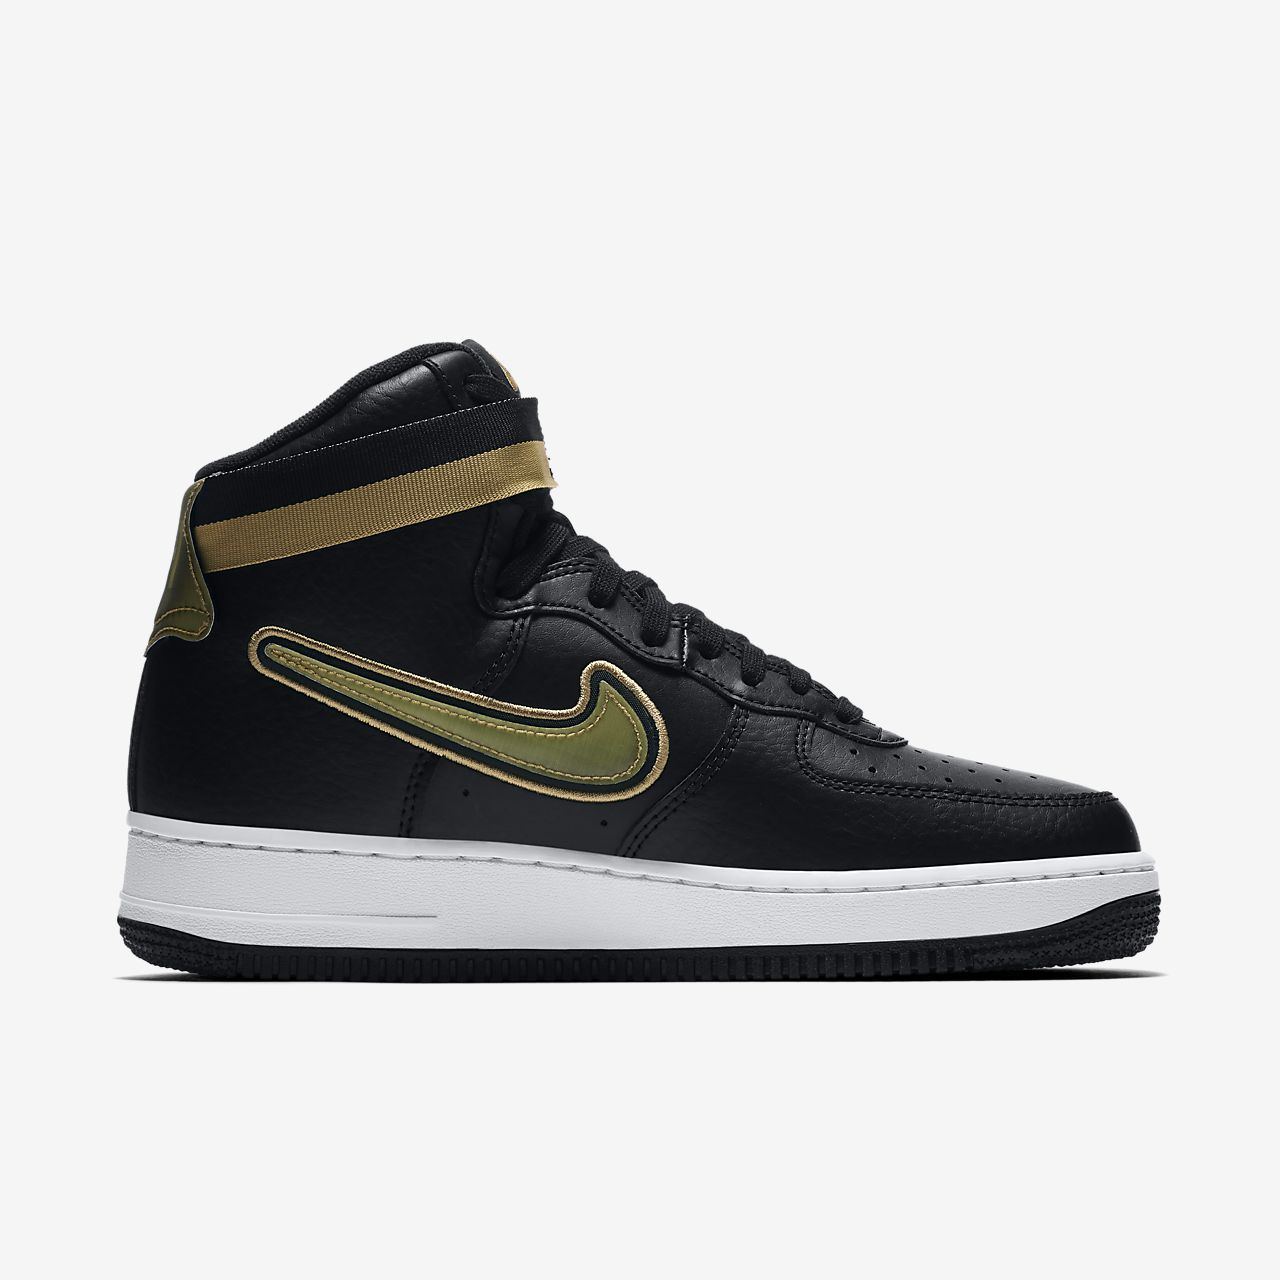 save off 1aeaf 234e0 Chaussure Nike Air Force 1 High '07 LV8 Sport NBA pour Homme. Nike ...